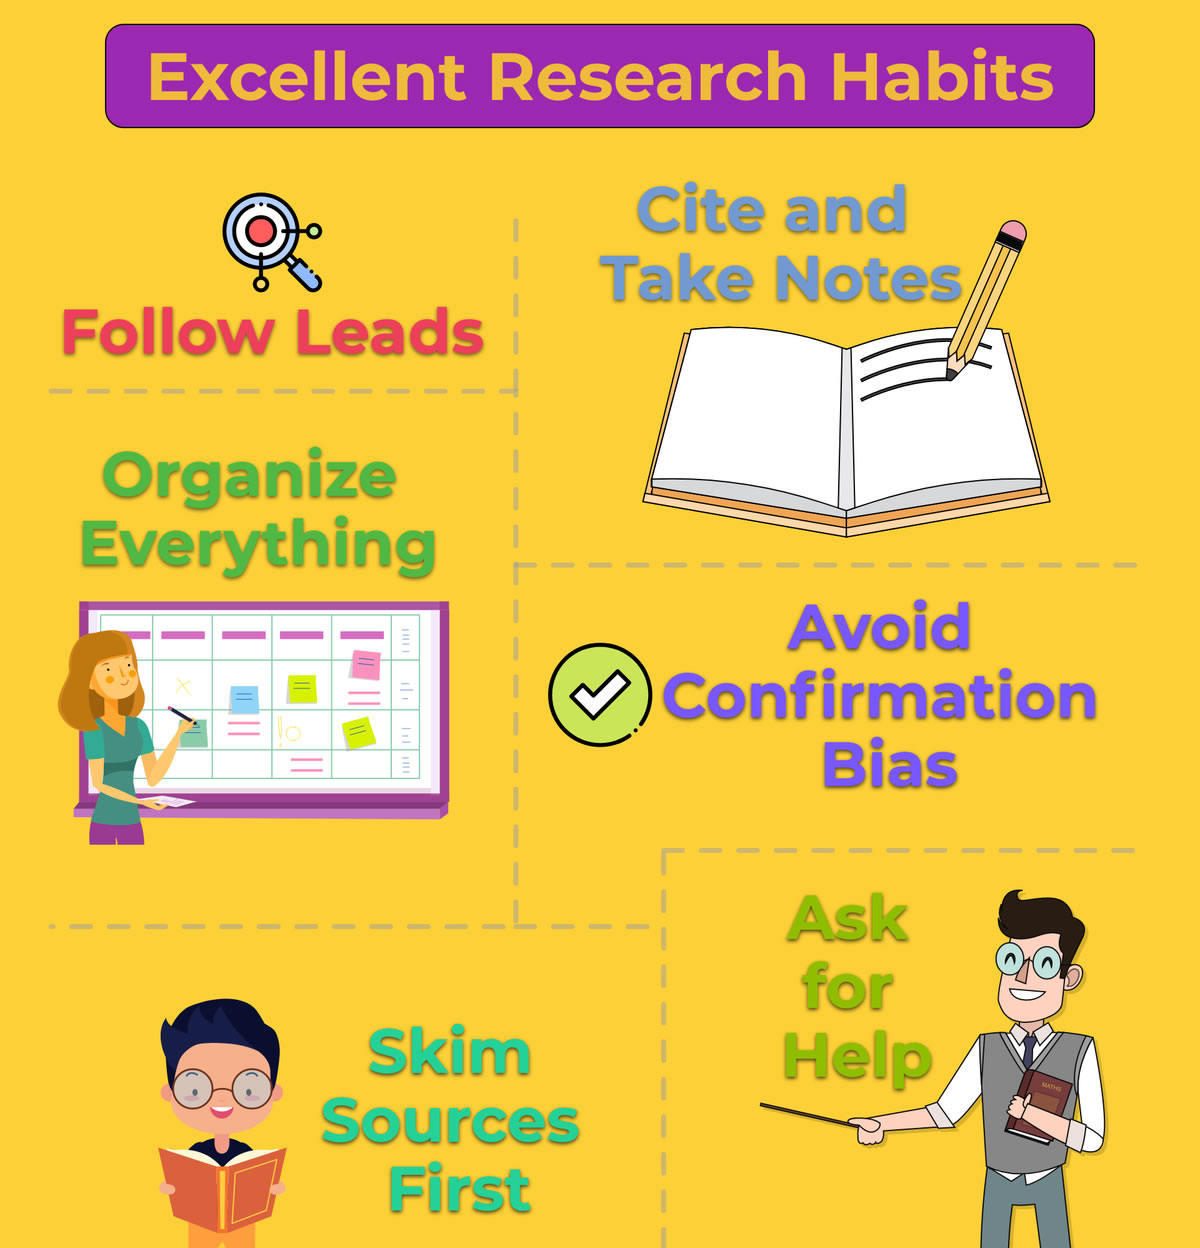 Excellent Research Habits